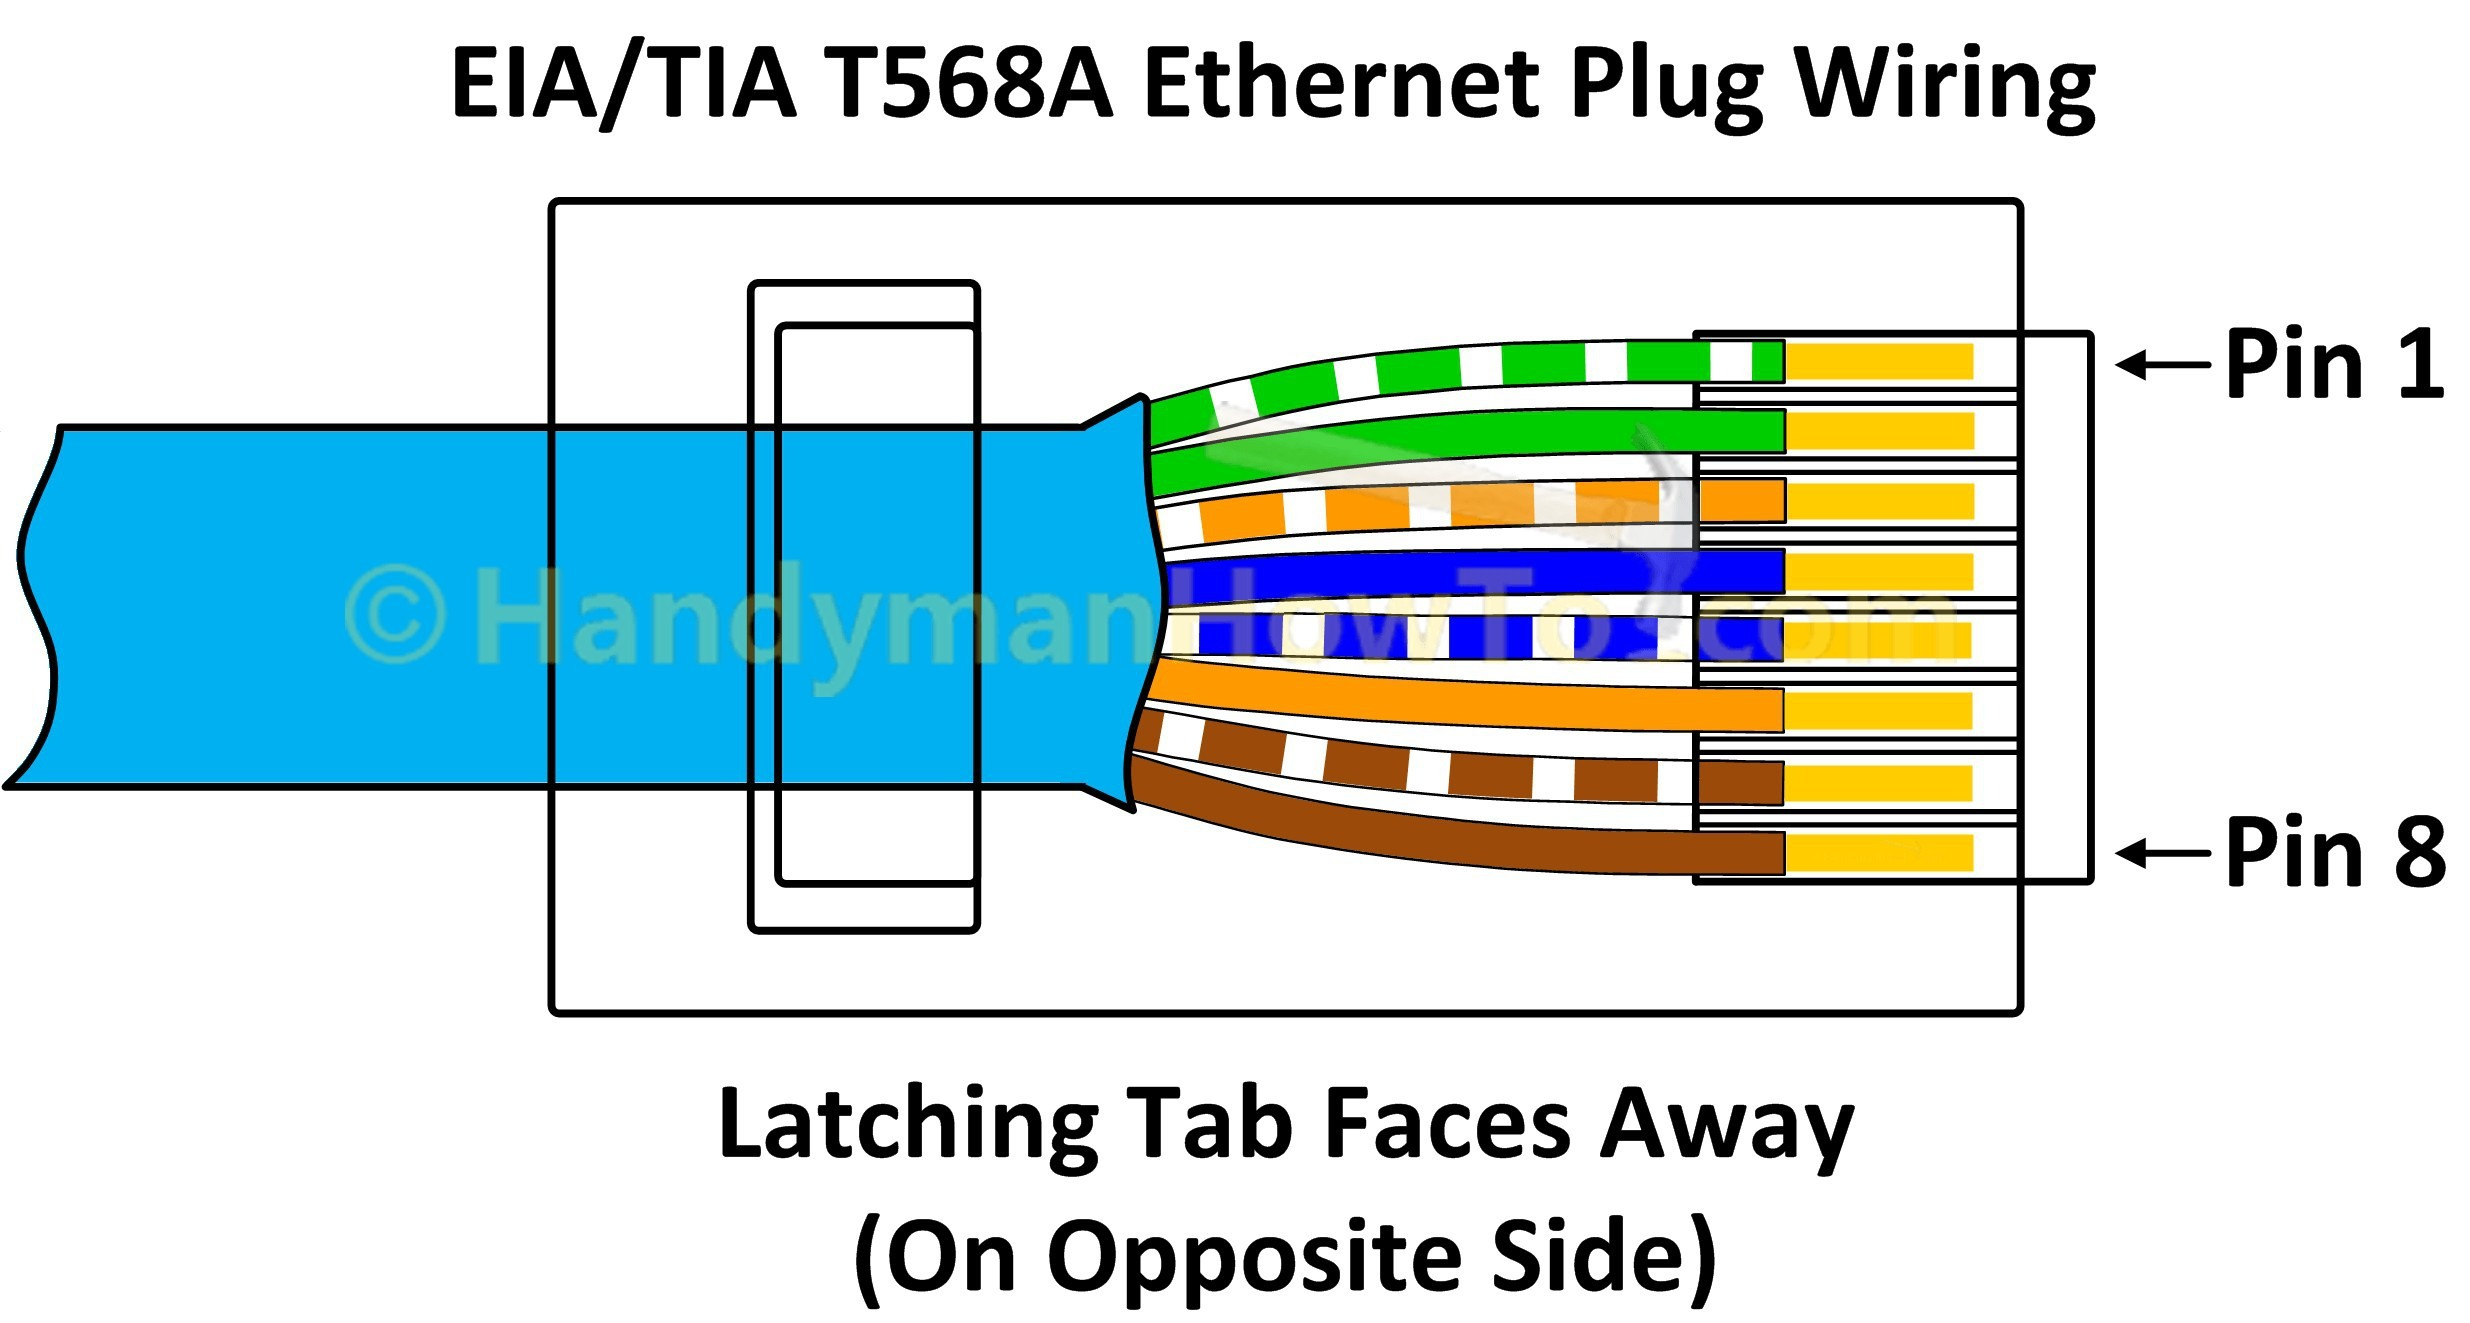 cat 6 wiring diagram wall jack Collection-Rj45 Wiring Diagram Inspirational Best Cat6 Wire Diagram Diagram 3-e